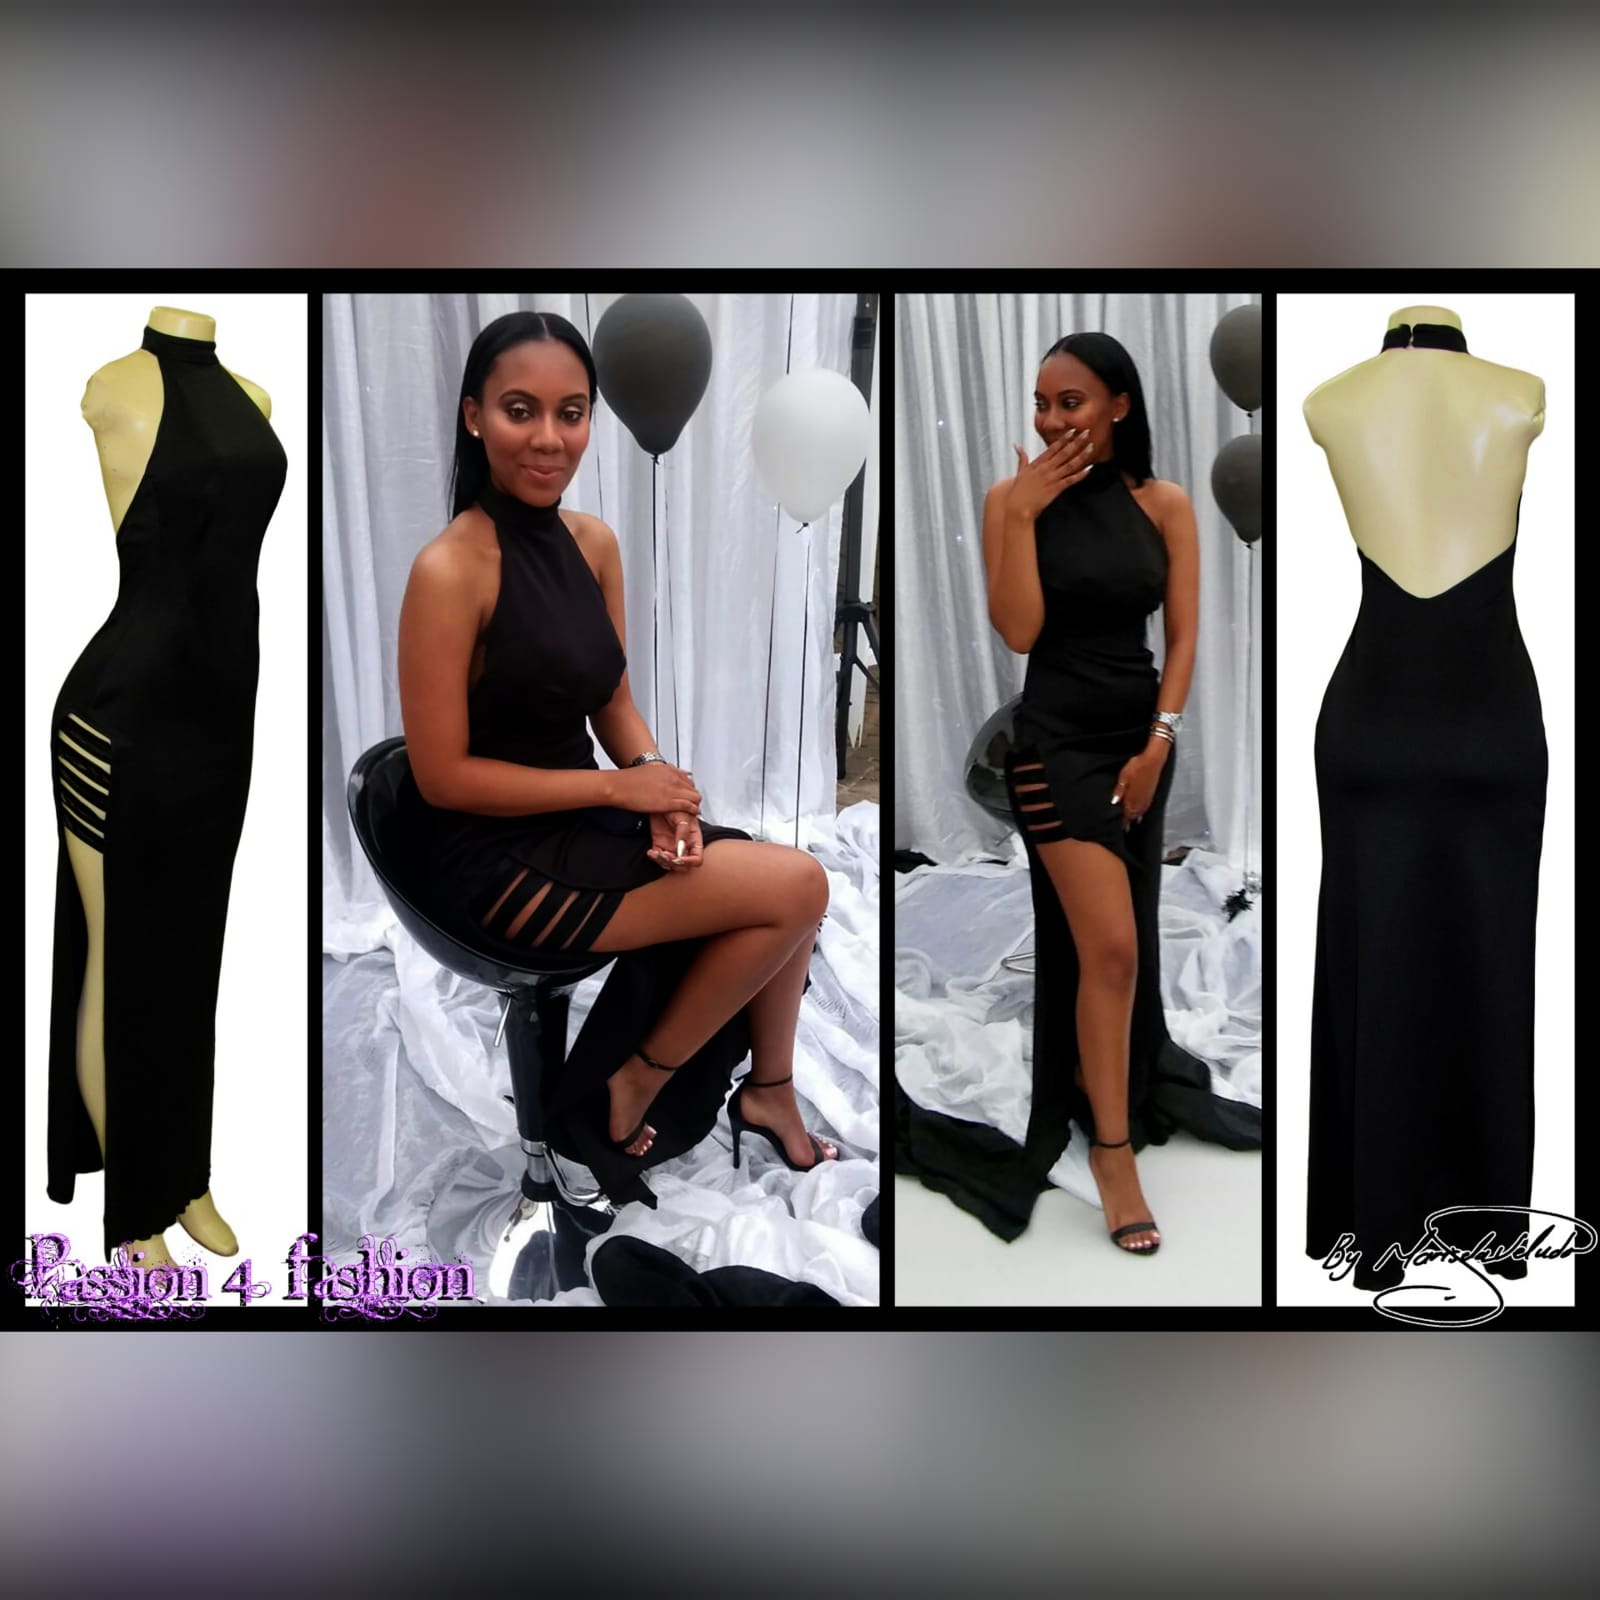 Black backless choker neckline formal dress 2 black backless choker neckline formal dress, straight fit with a high slit and strap detailing.